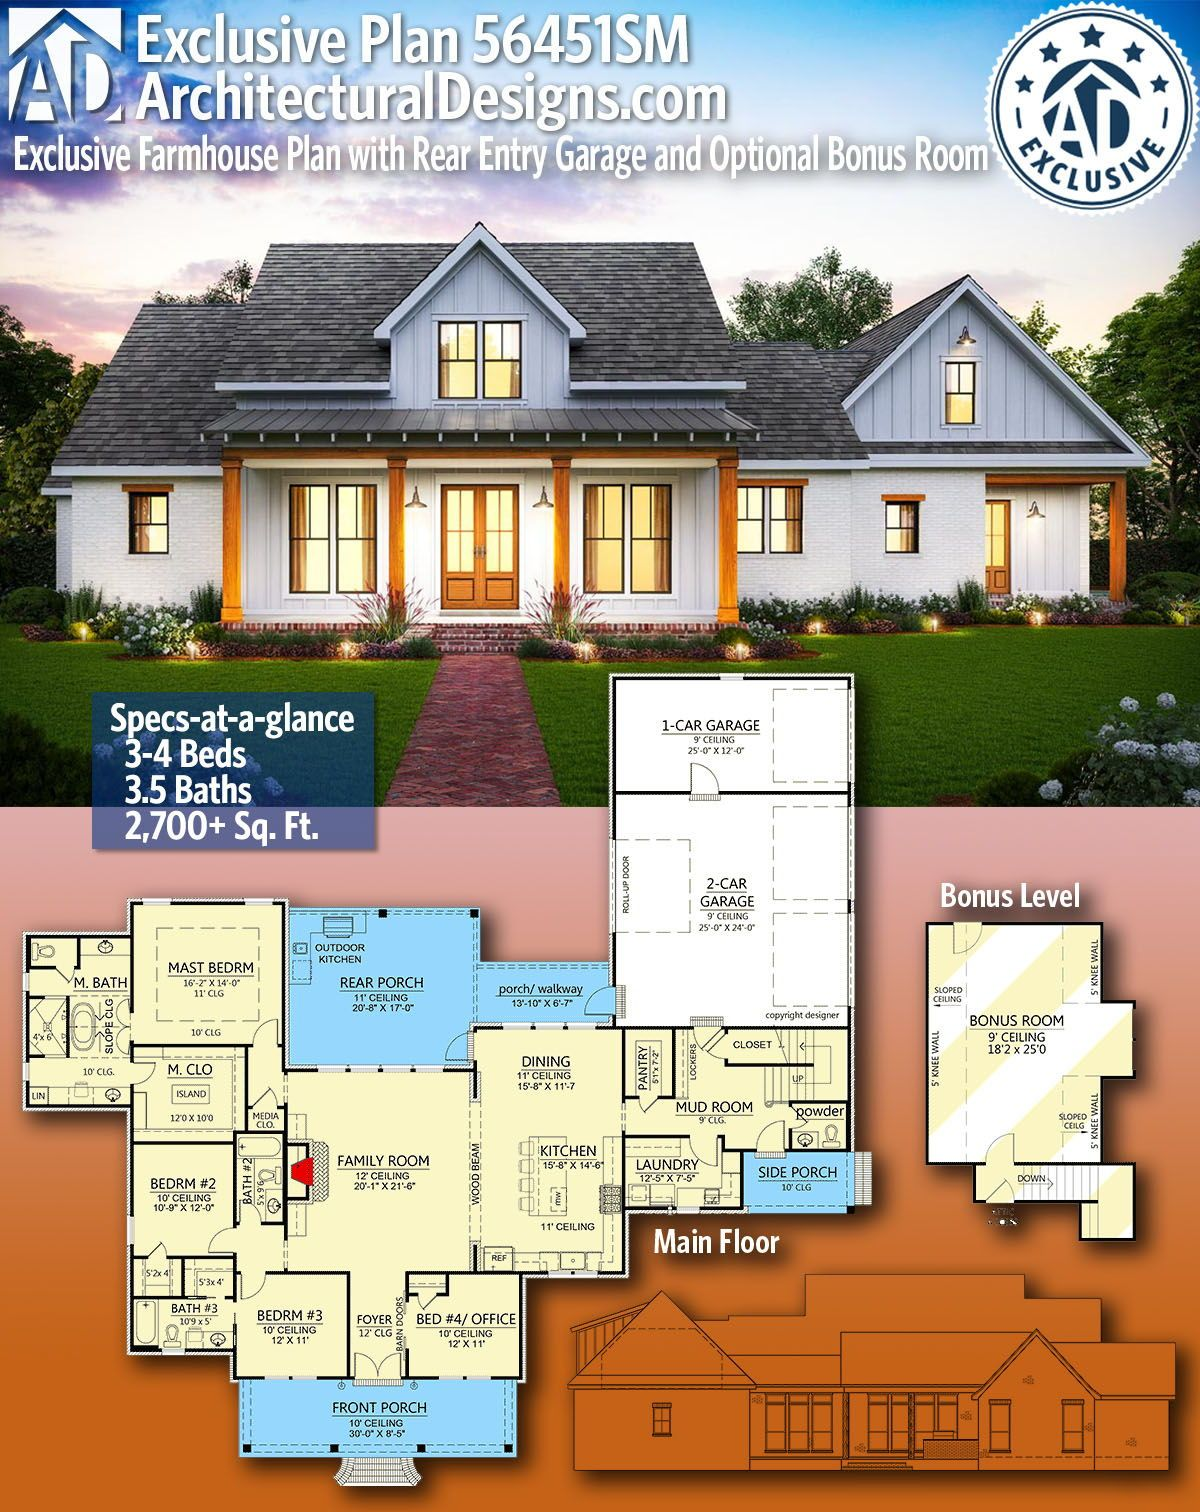 Plan 56451sm Exclusive Farmhouse Plan With Rear Entry Garage And Optional Bonus Room Farmhouse Plans House Plans Farmhouse New House Plans